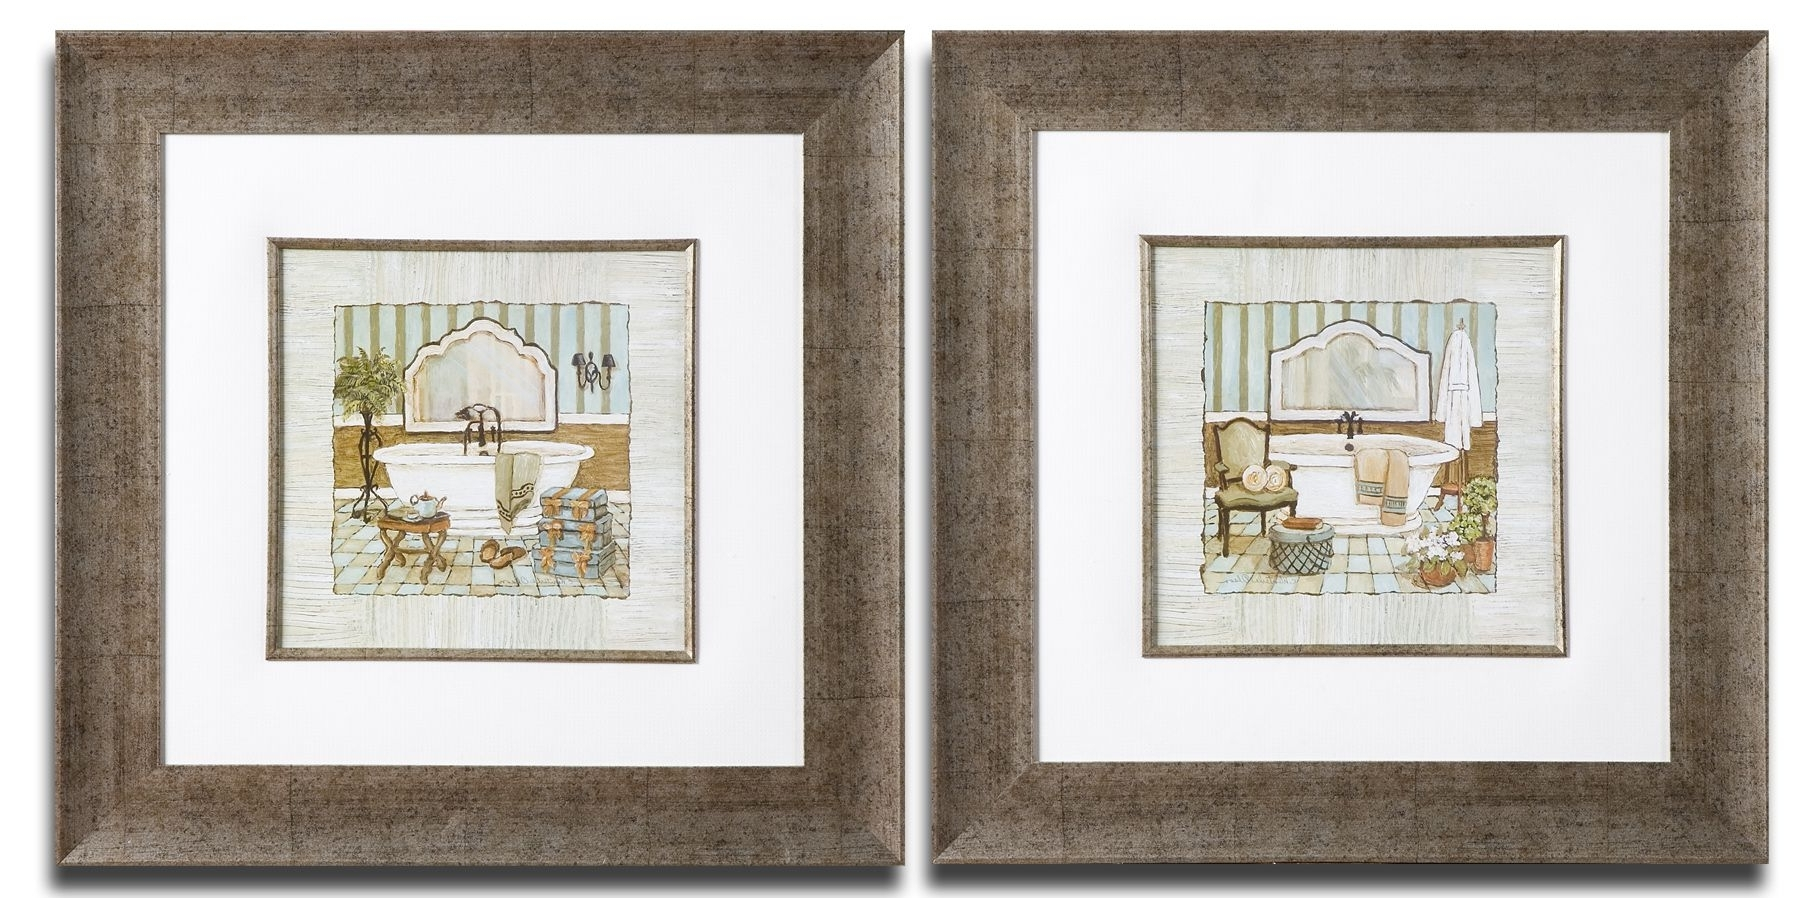 Framed Art For Bathroom, French Bathroom Prints Vintage Intended For Most Popular French Country Wall Art Prints (View 5 of 15)